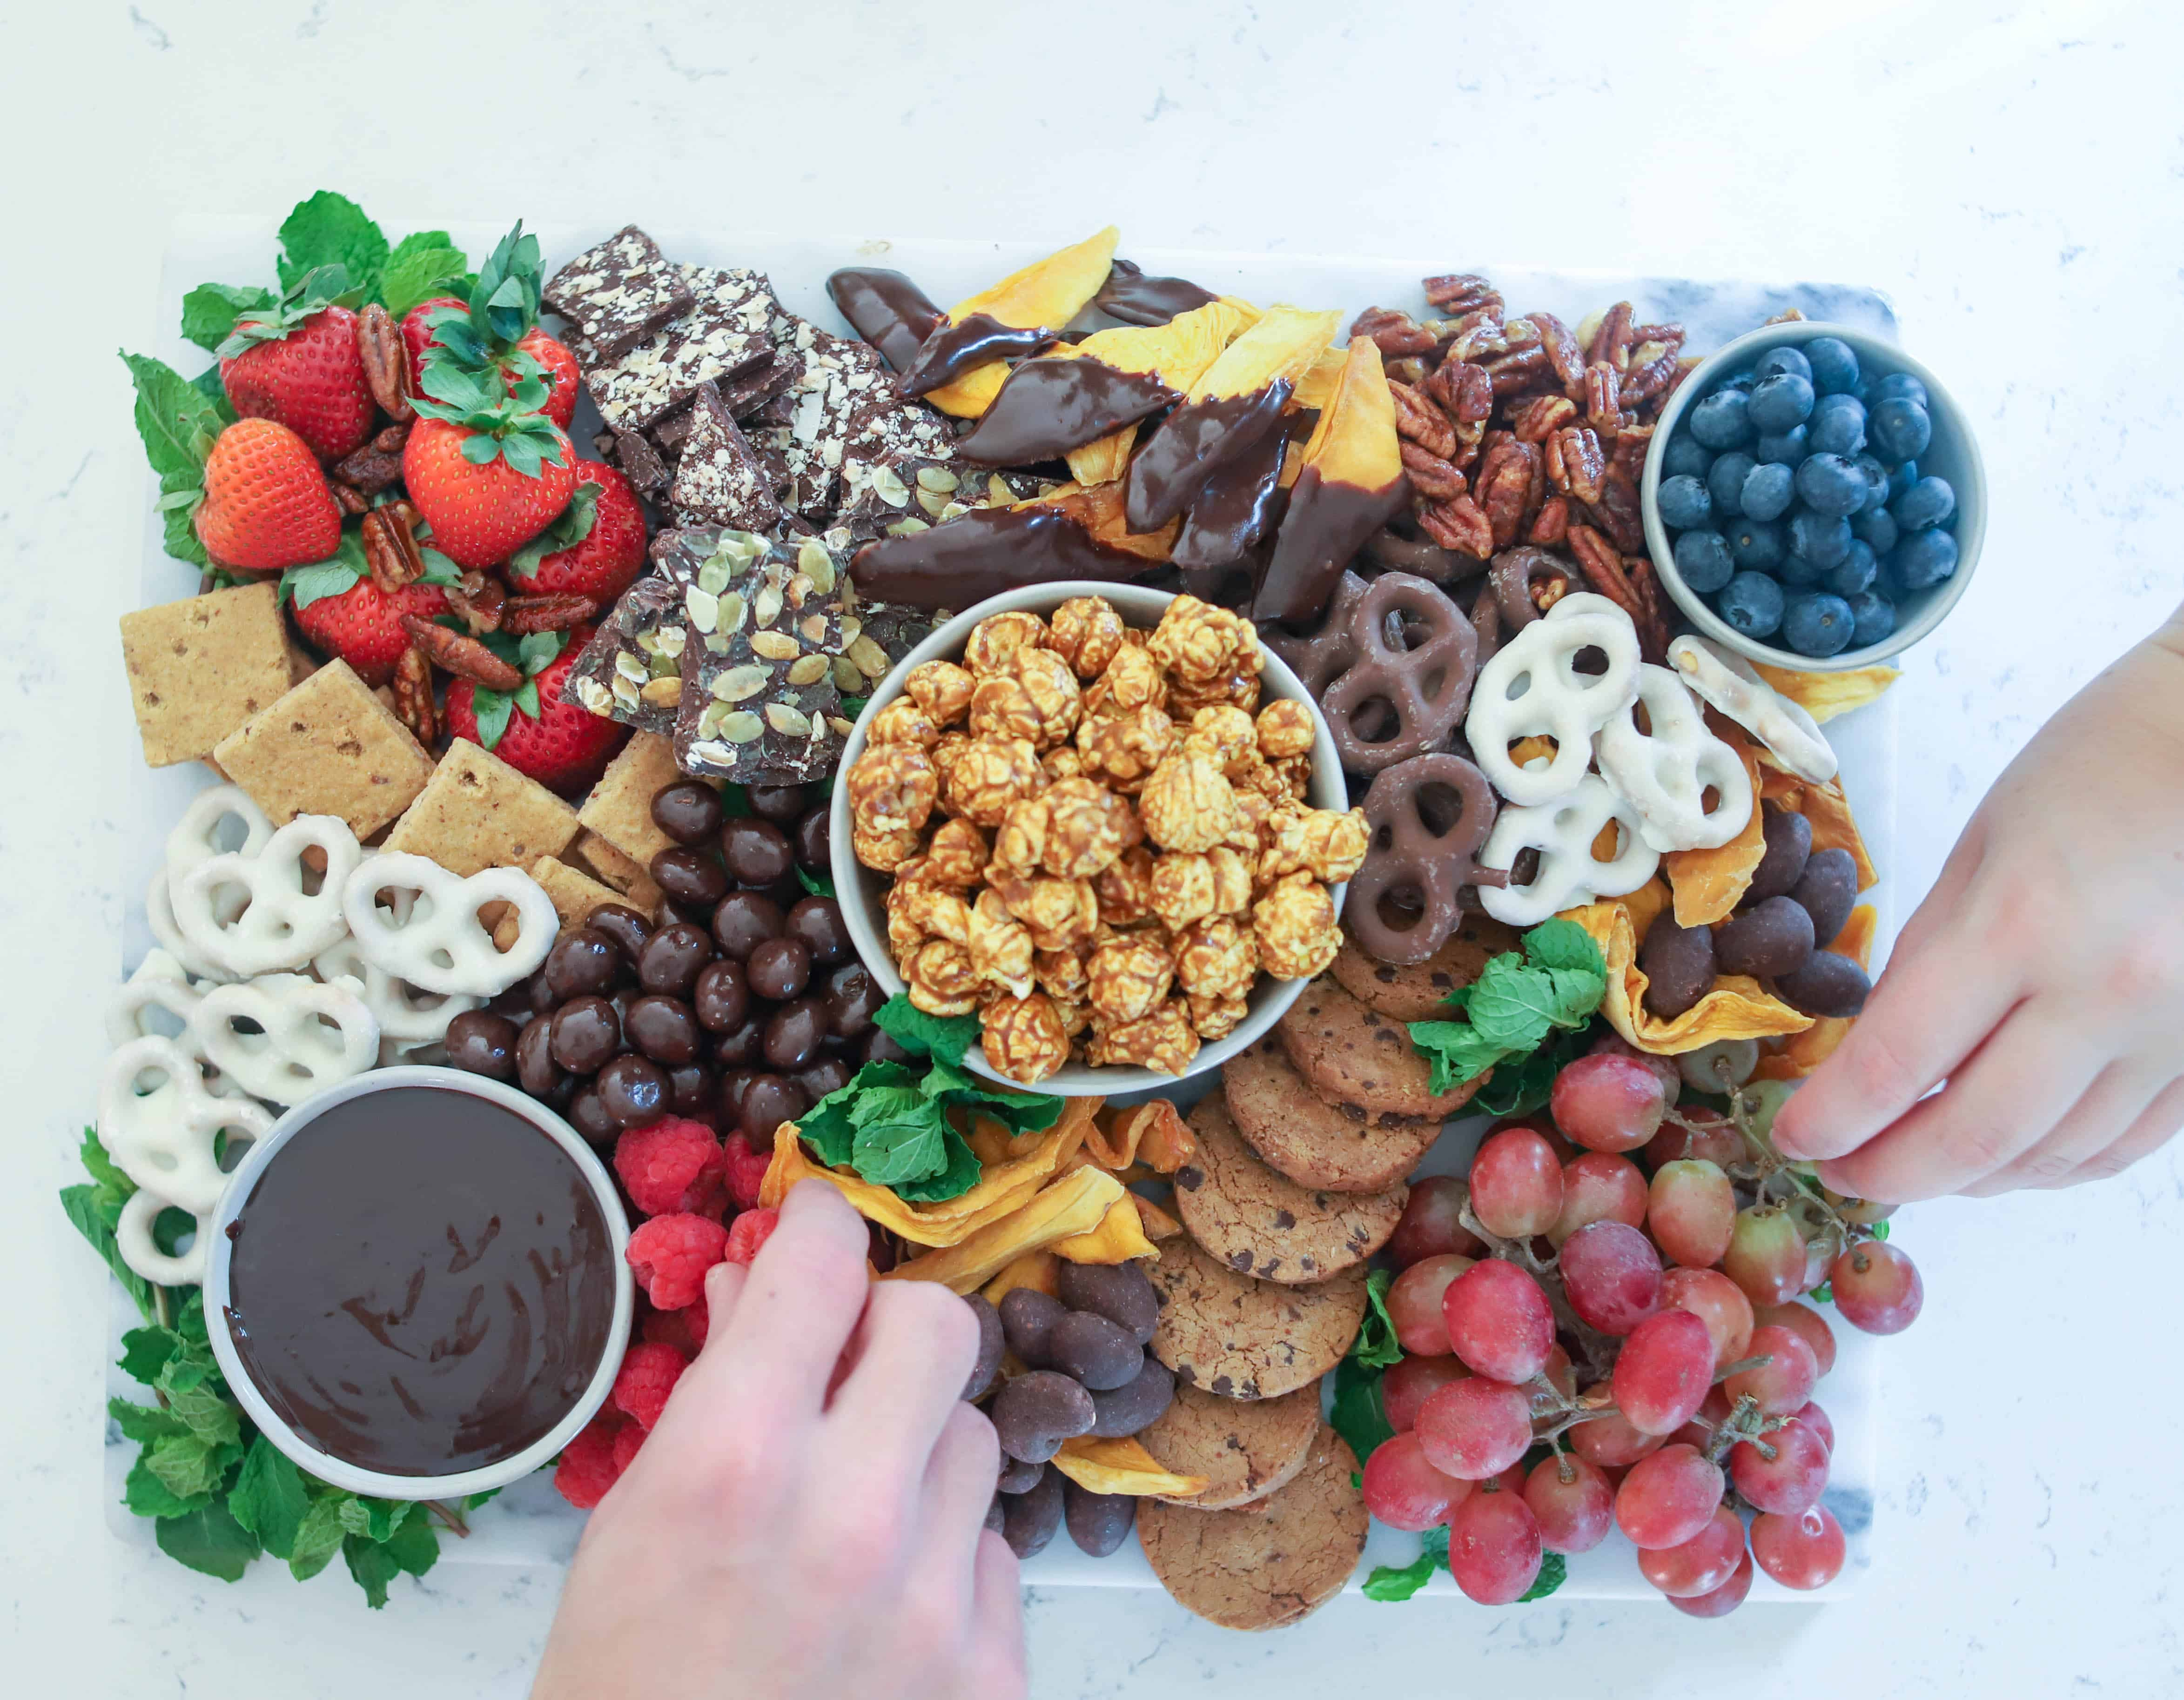 hands reaching for items on dessert board